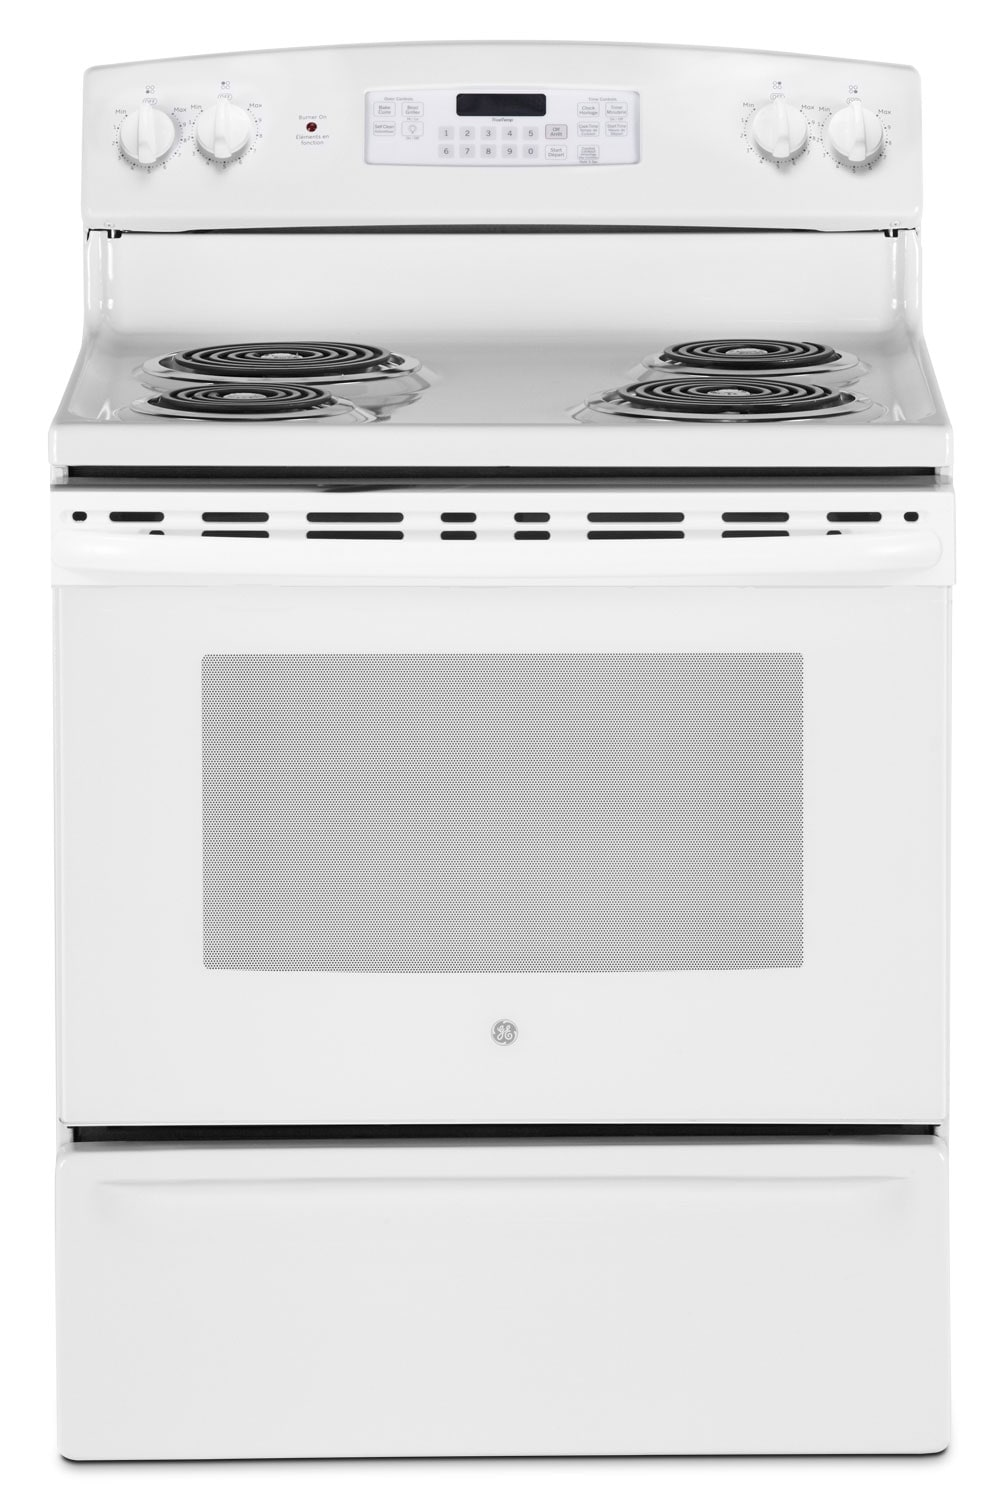 GE 5.0 Cu. Ft. Freestanding Electric Range – JCB530DJWW